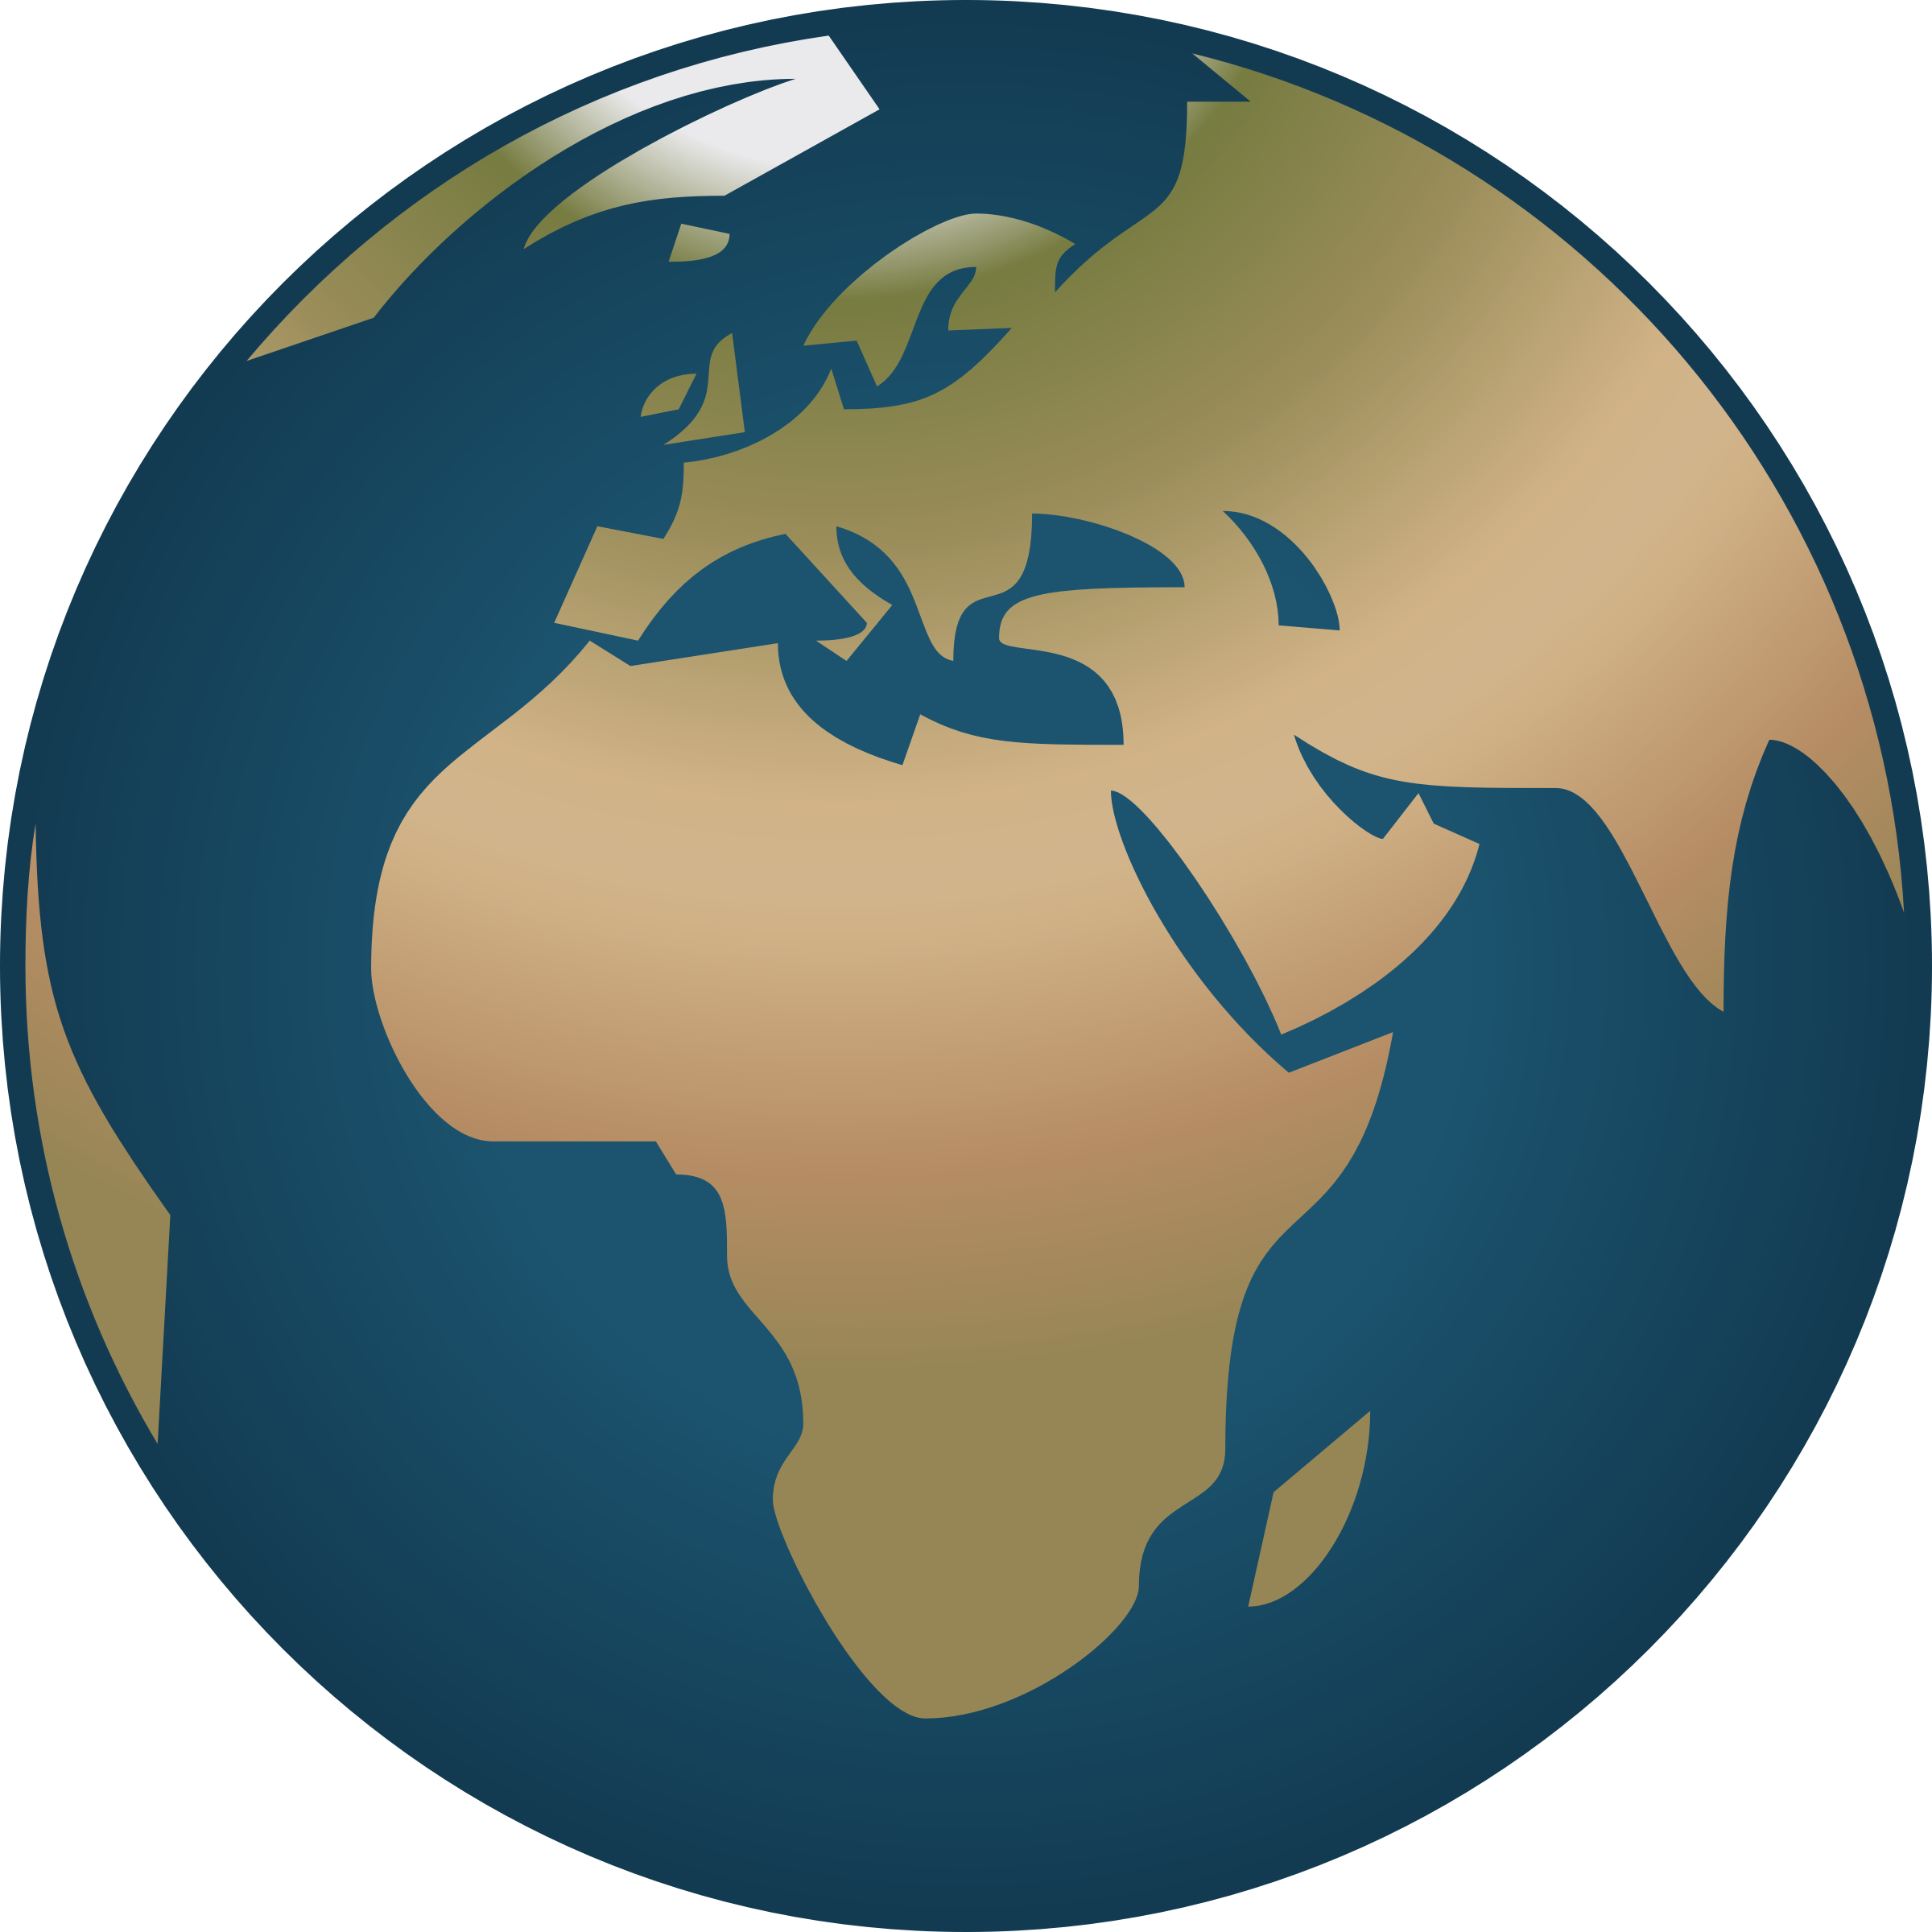 Simple globe facing and. Europe clipart animated